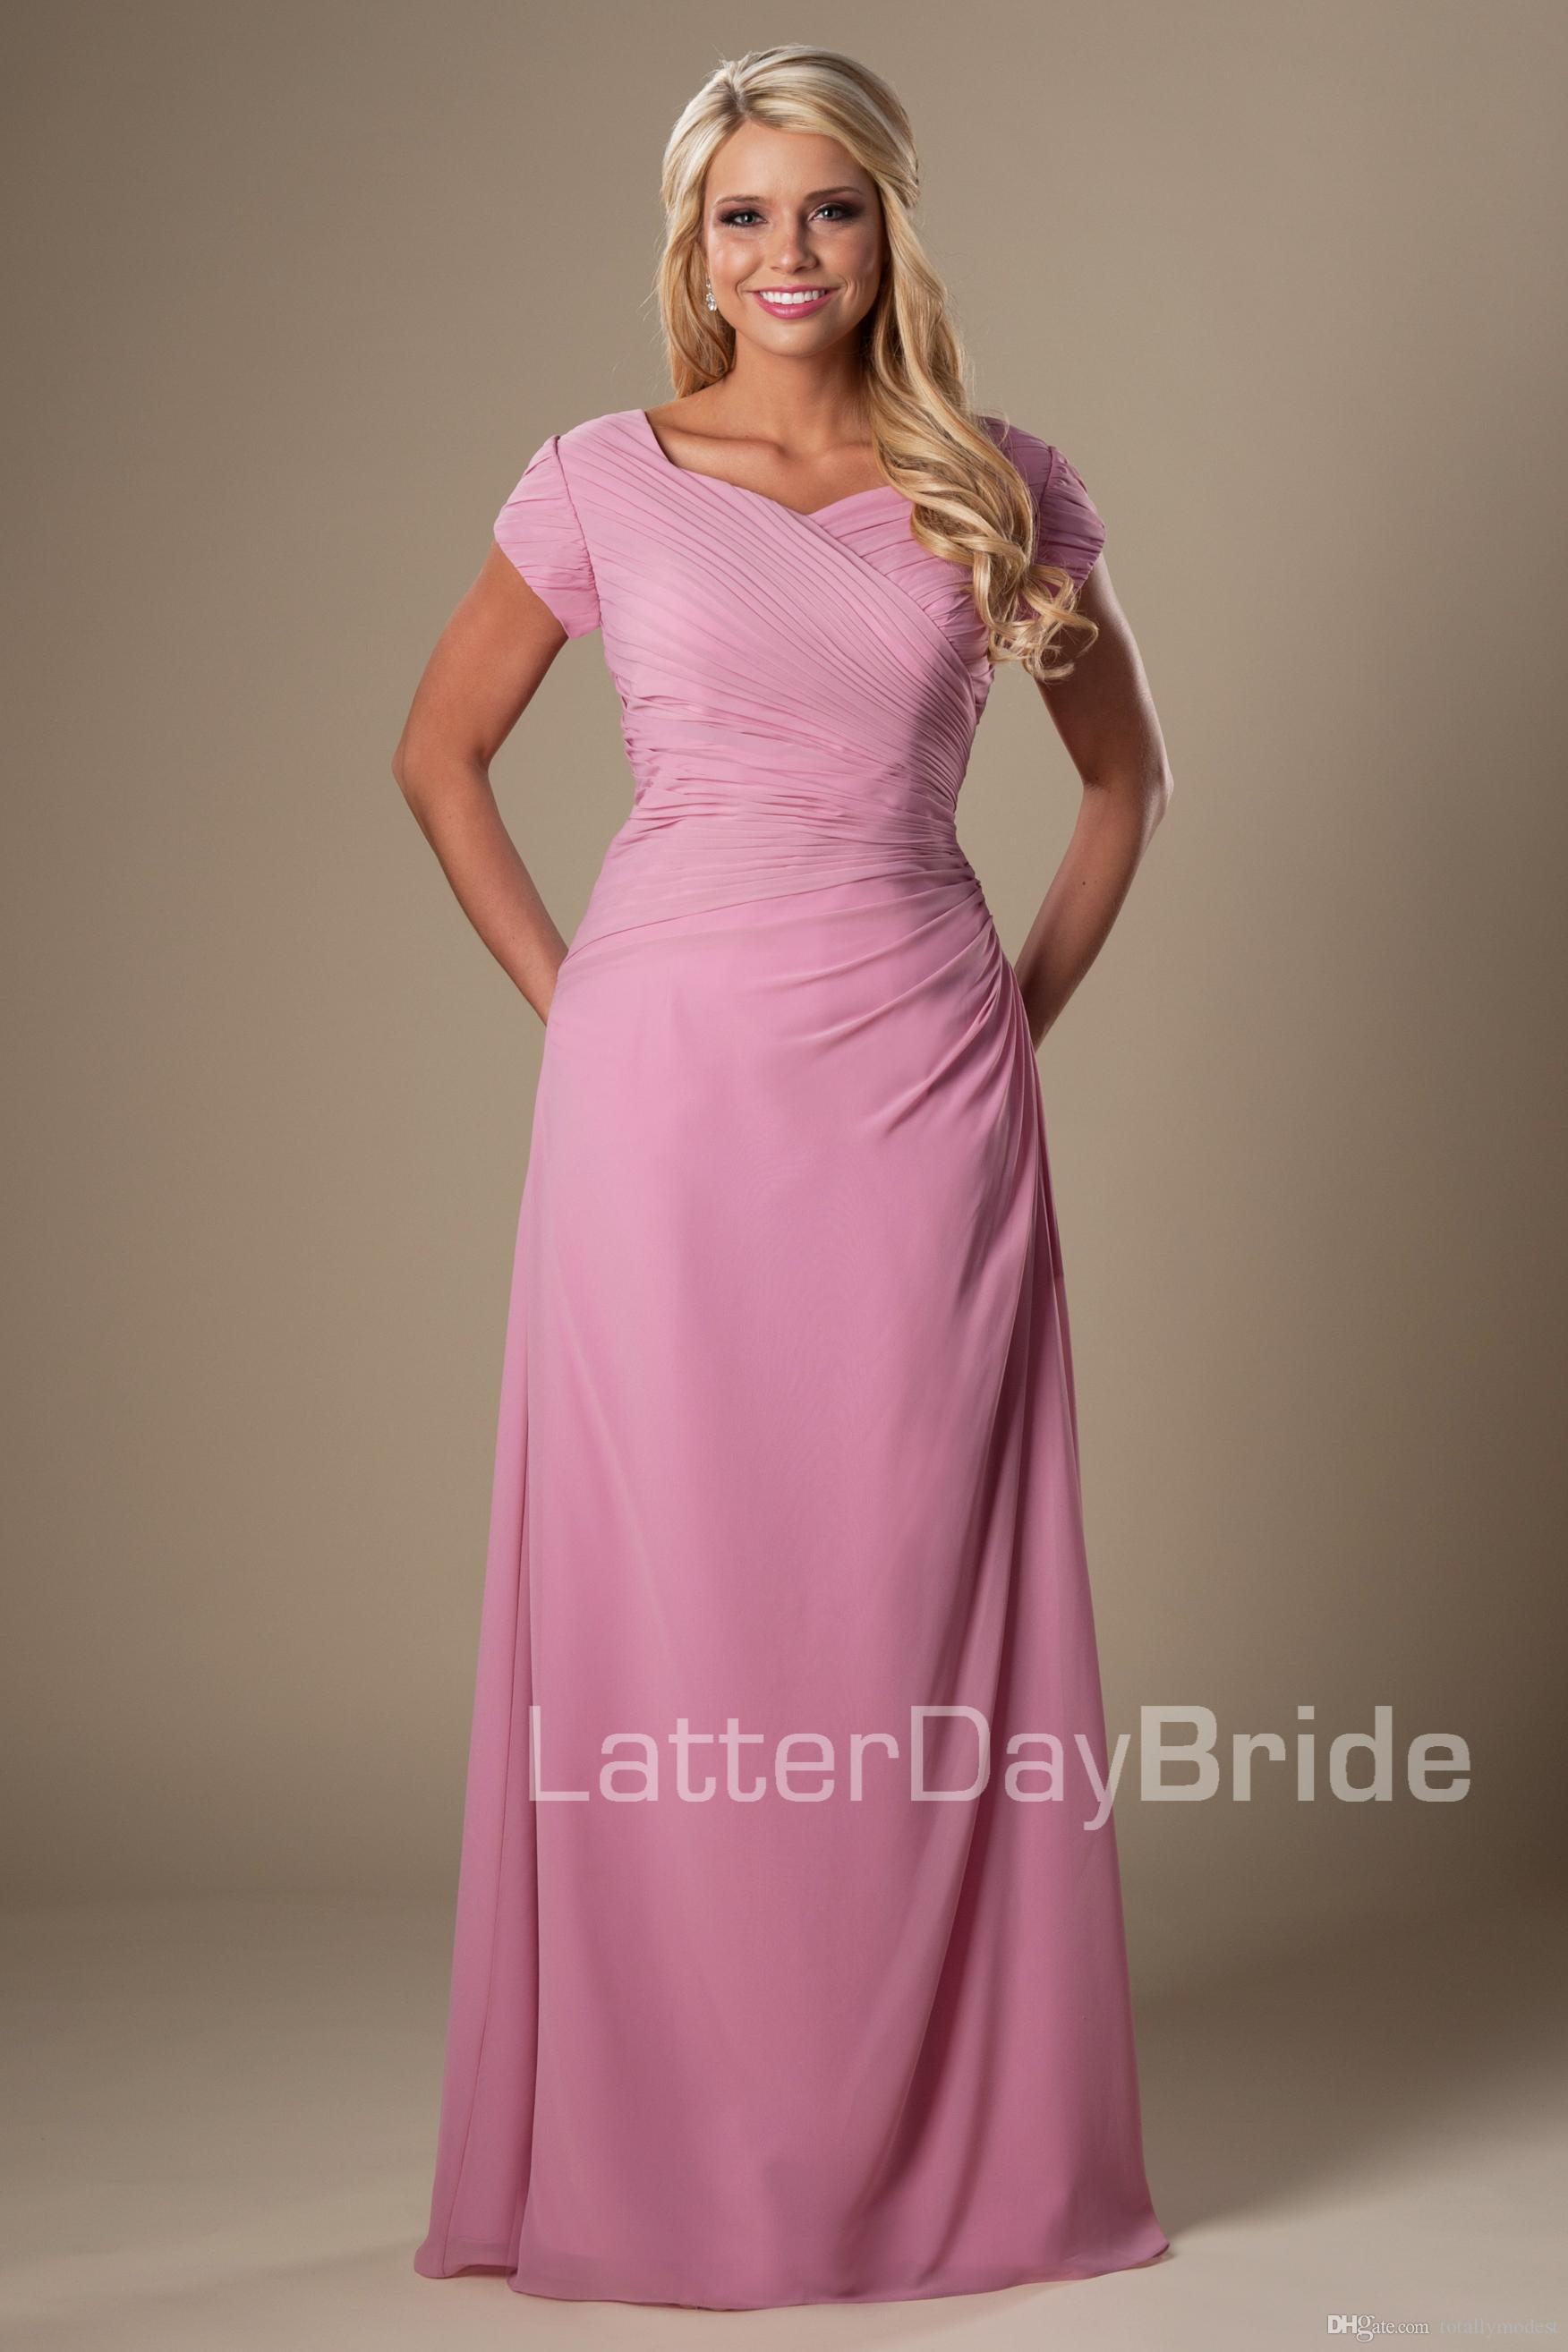 Dusty Rose Chiffon Long Modest Bridesmaid Dresses With Short Sleeves ... 5292a9ae6eea